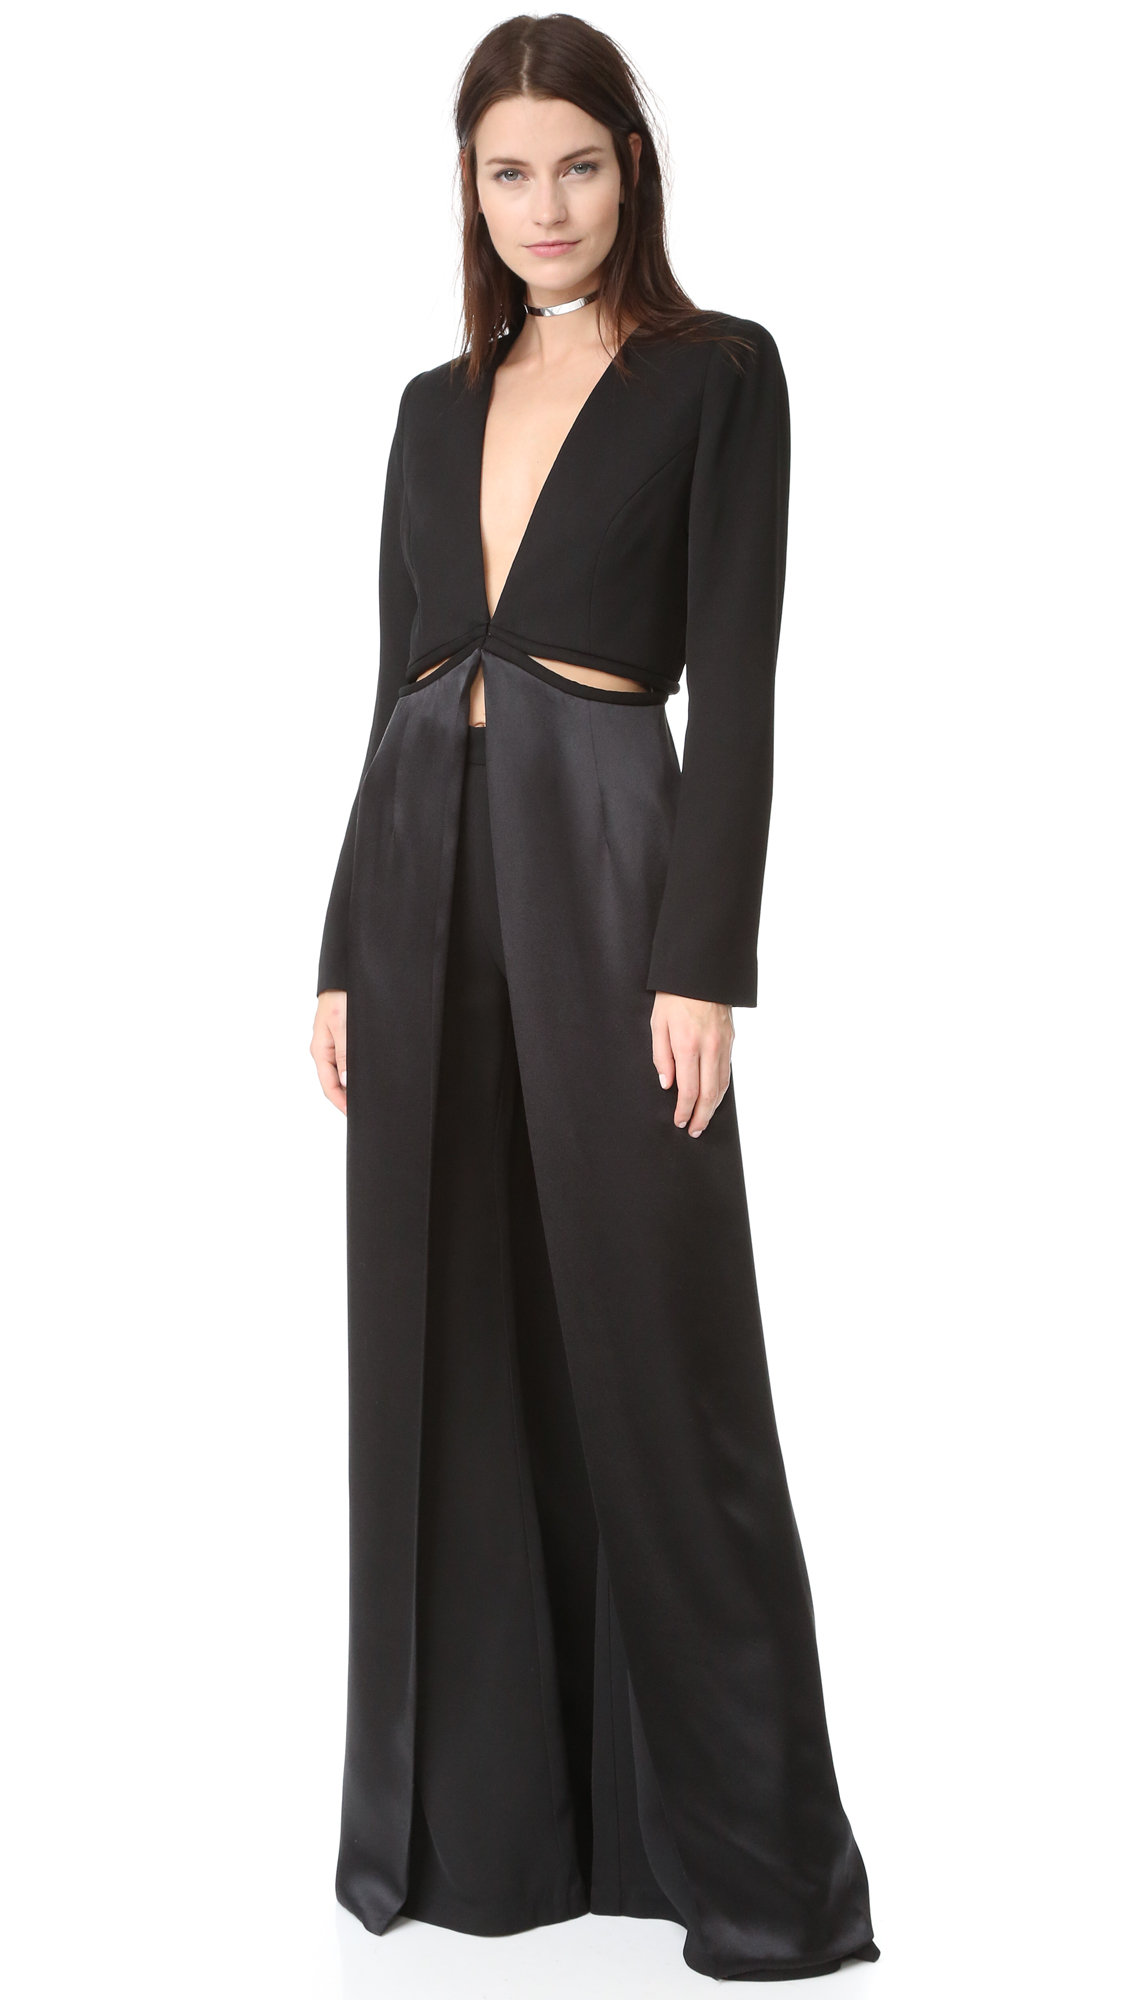 A unique Brandon Maxwell coat in a dramatic, fluid shape. Interior buttons join the substantial bodice and lustrous skirt, and cutouts add a flirty finish. Padding structures the shoulders. Hook and eye closures. Long sleeves. Lined.